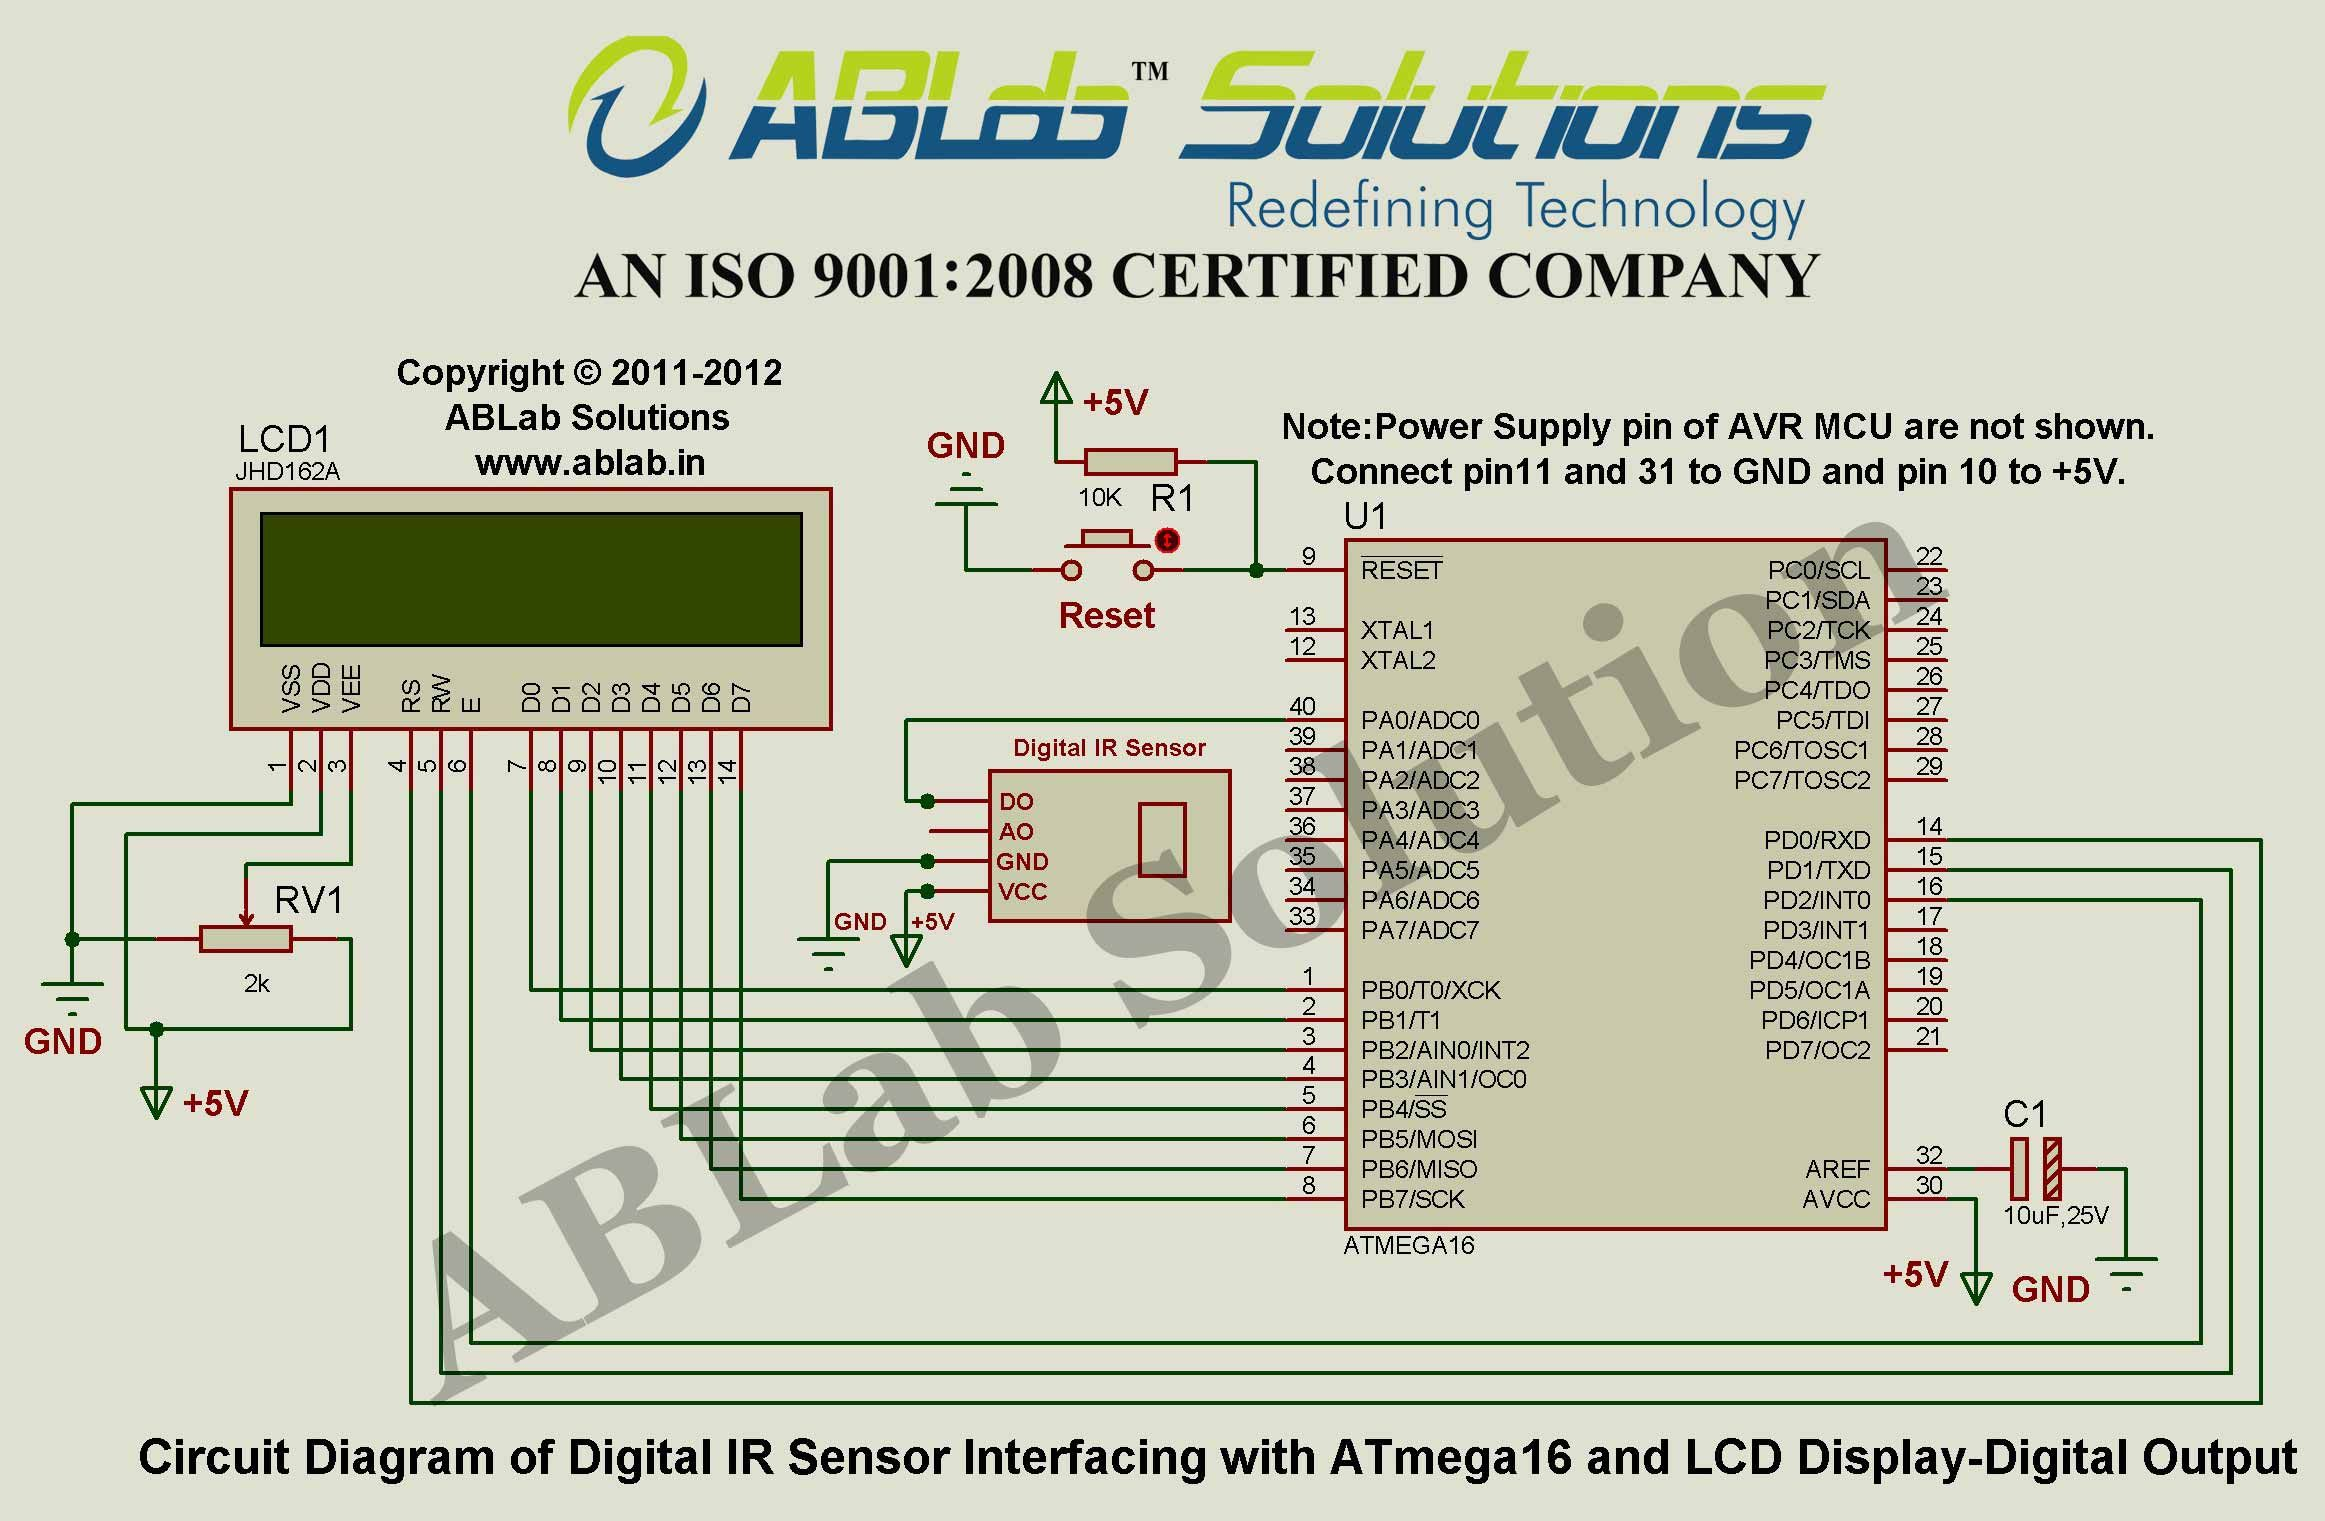 small resolution of digital ir sensor interfacing with avr atmega16 microcontroller and lcd display digital output circuit diagram ablab solutions